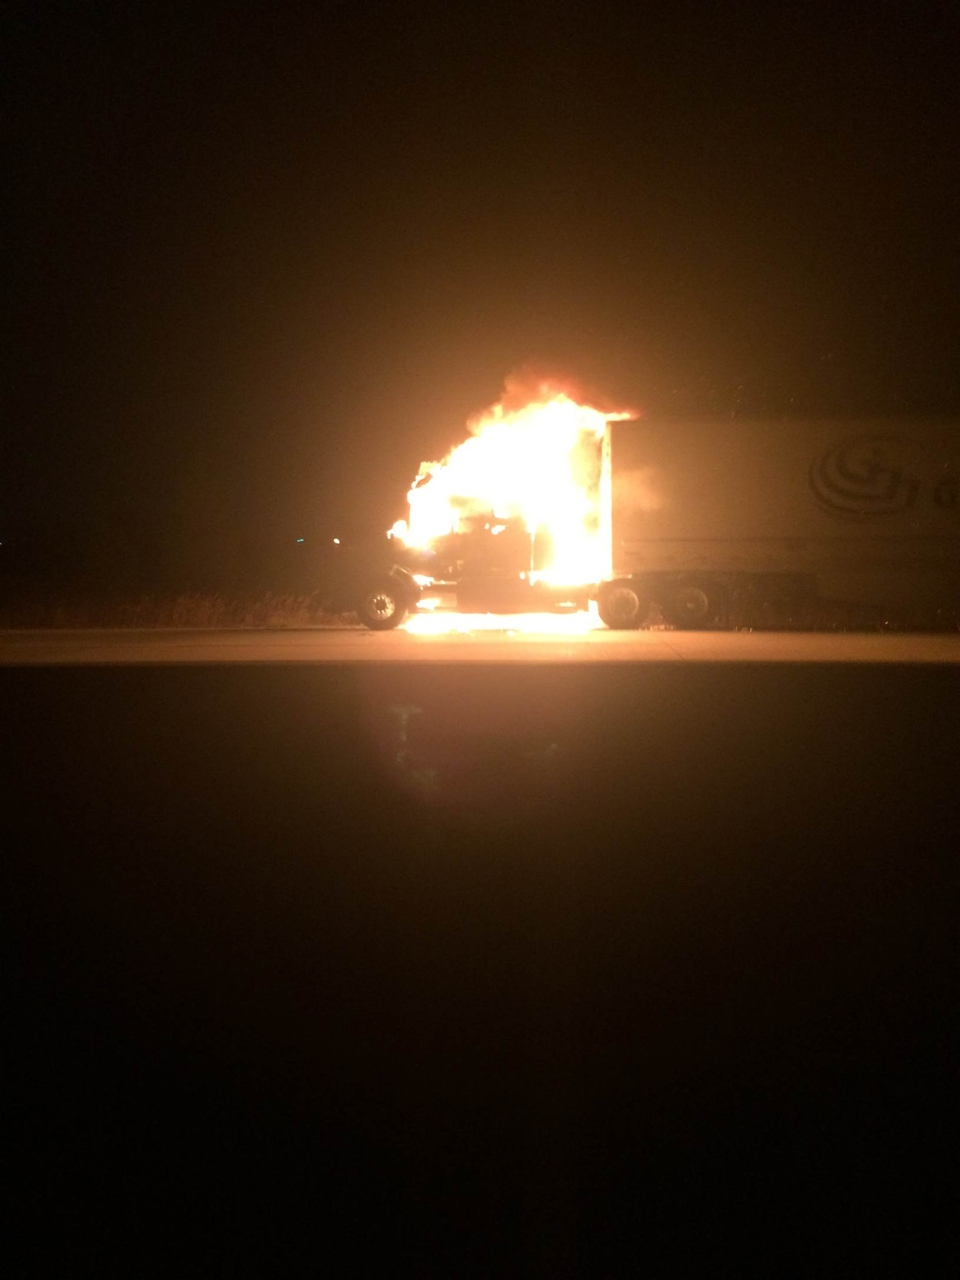 A truck fire on Highway 401 westbound around the 52 km marker at about 5 a.m. on Monday, Nov. 14, 2016. (Jason Stroud/MyNews)